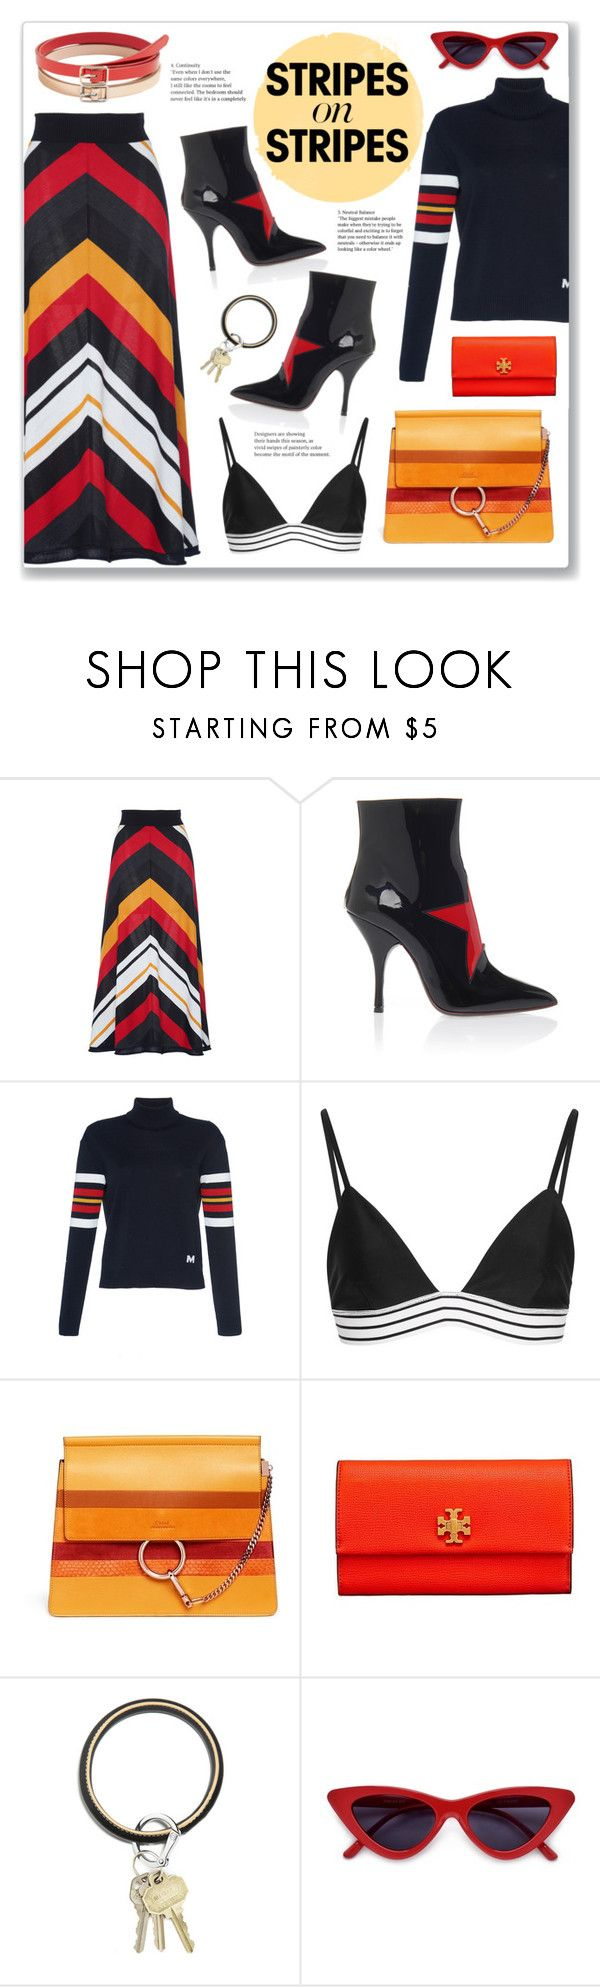 """Stripes"" by hellodollface ❤ liked on Polyvore featuring MSGM, Tori Praver Swimwear, Tory Burch, O-Venture, MANGO, stripesonstripes and PatternChallenge"